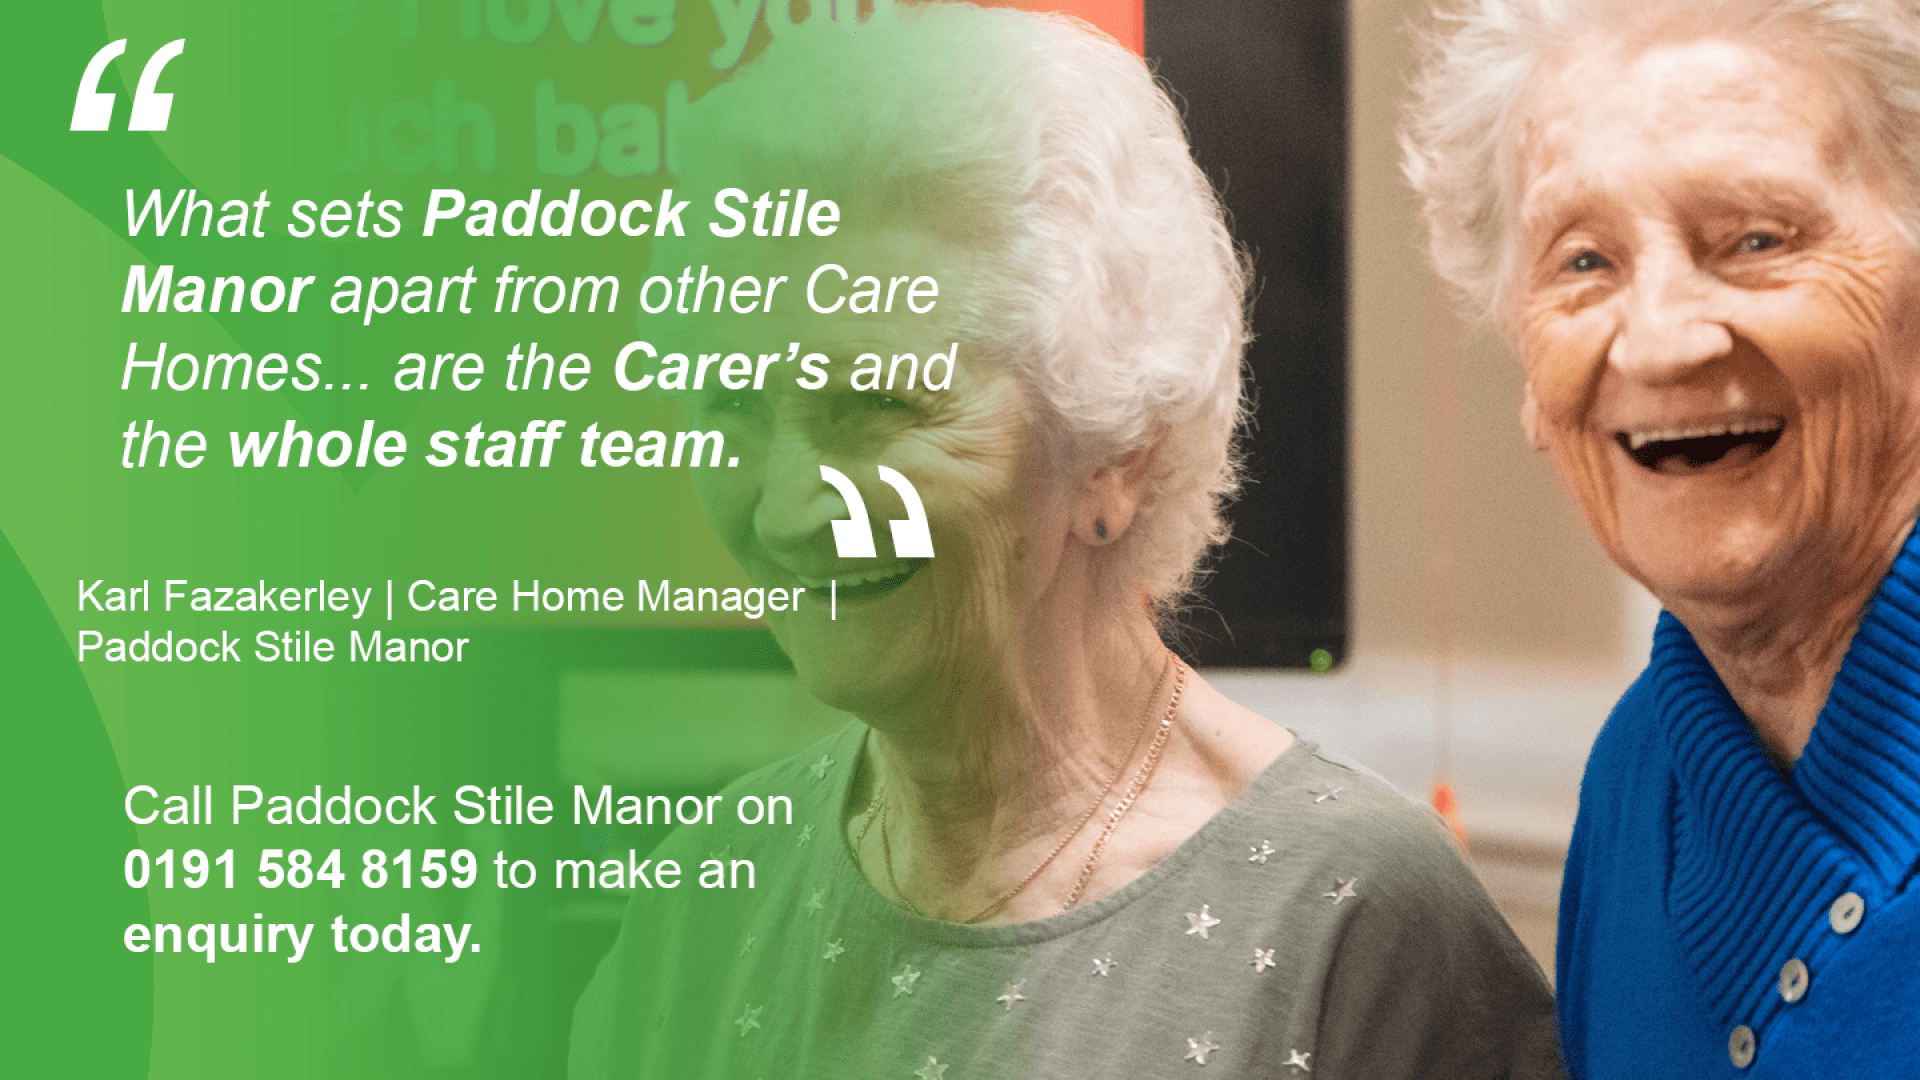 Paddock Stile Manor_Houghten Le Spring_Care Home_North East